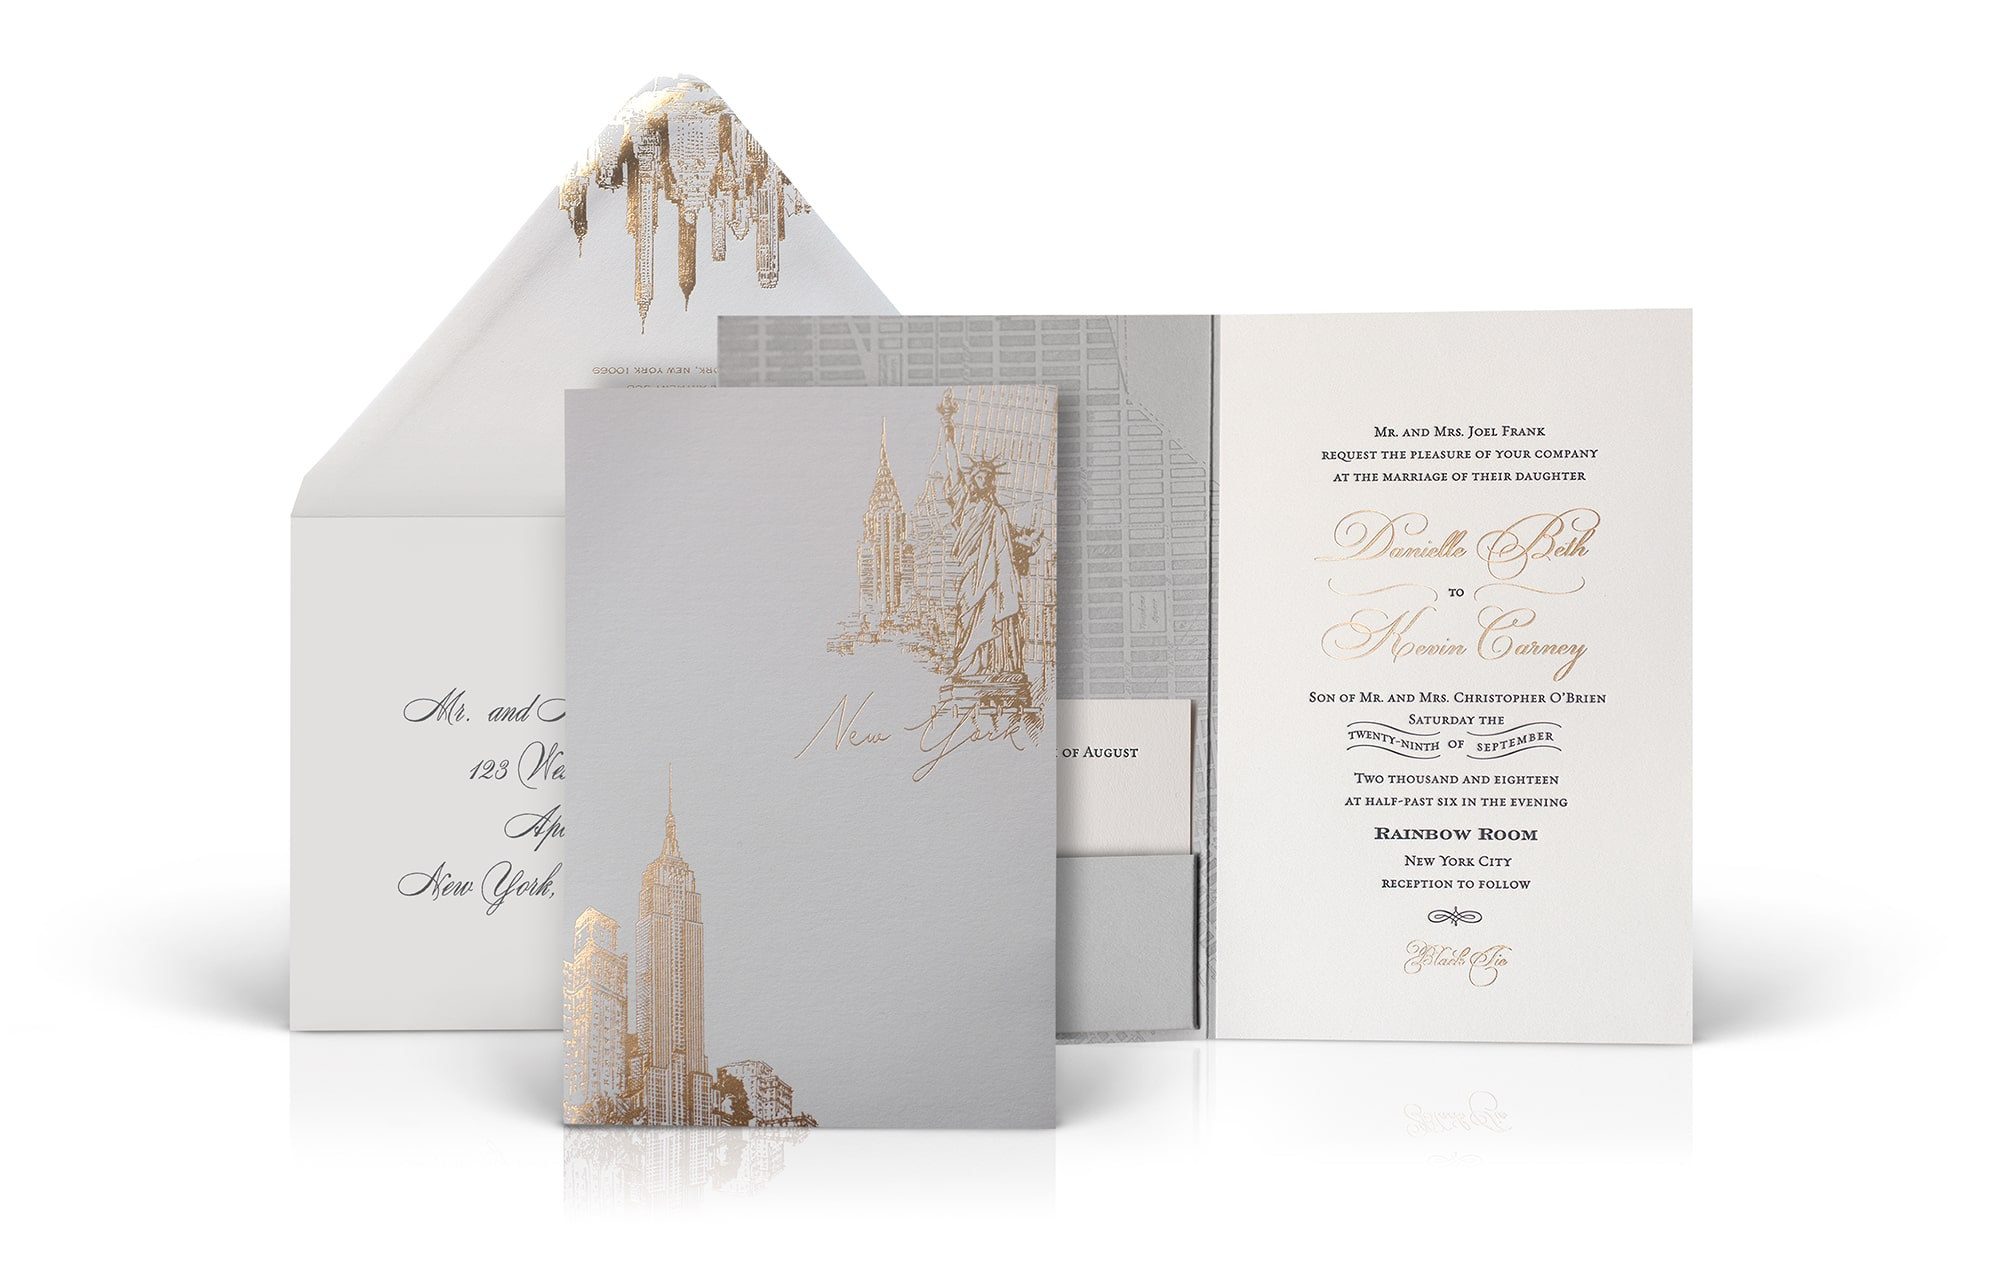 NYC Rainbow Room wedding invitation